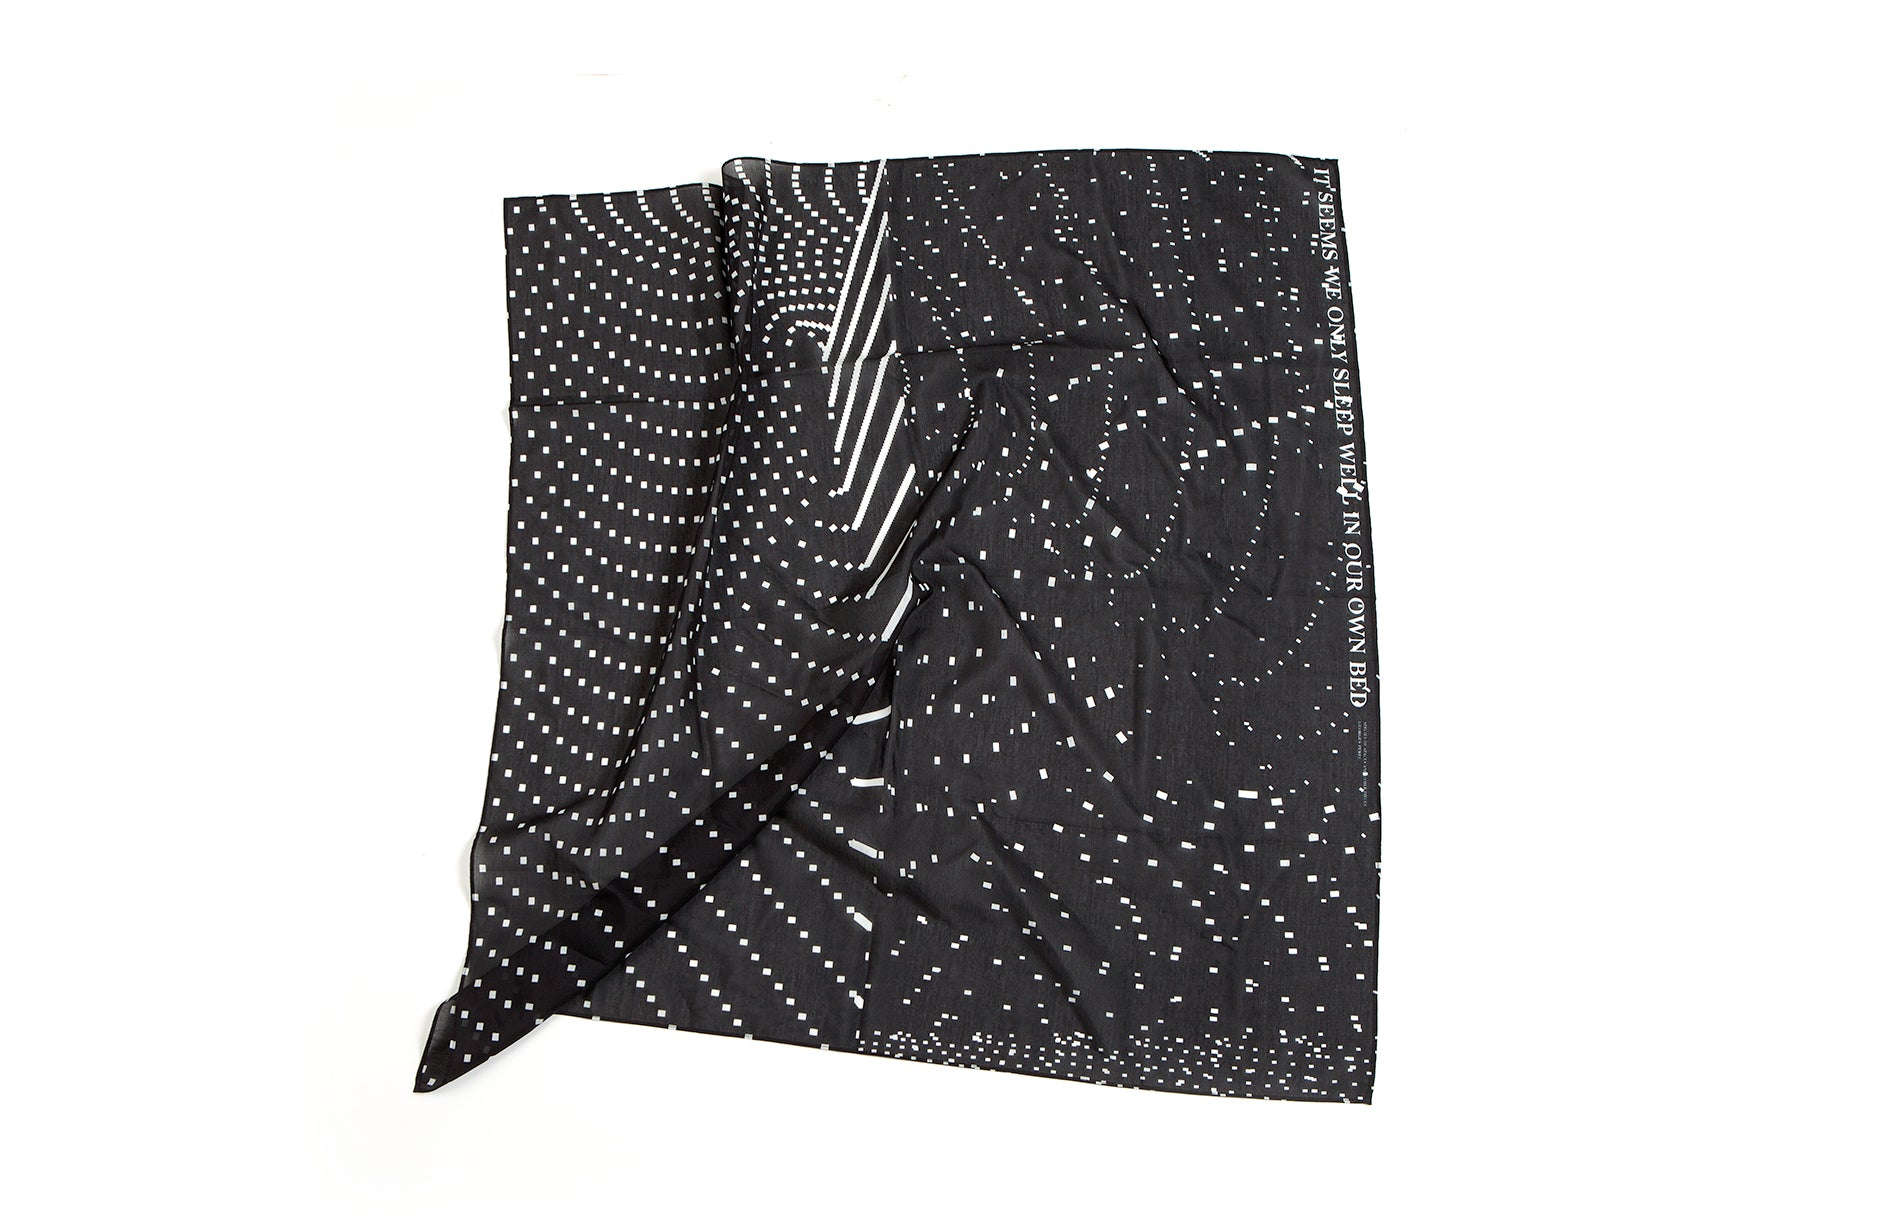 Sleep Scarf, 88x88 cm, Cotton-silk Blends